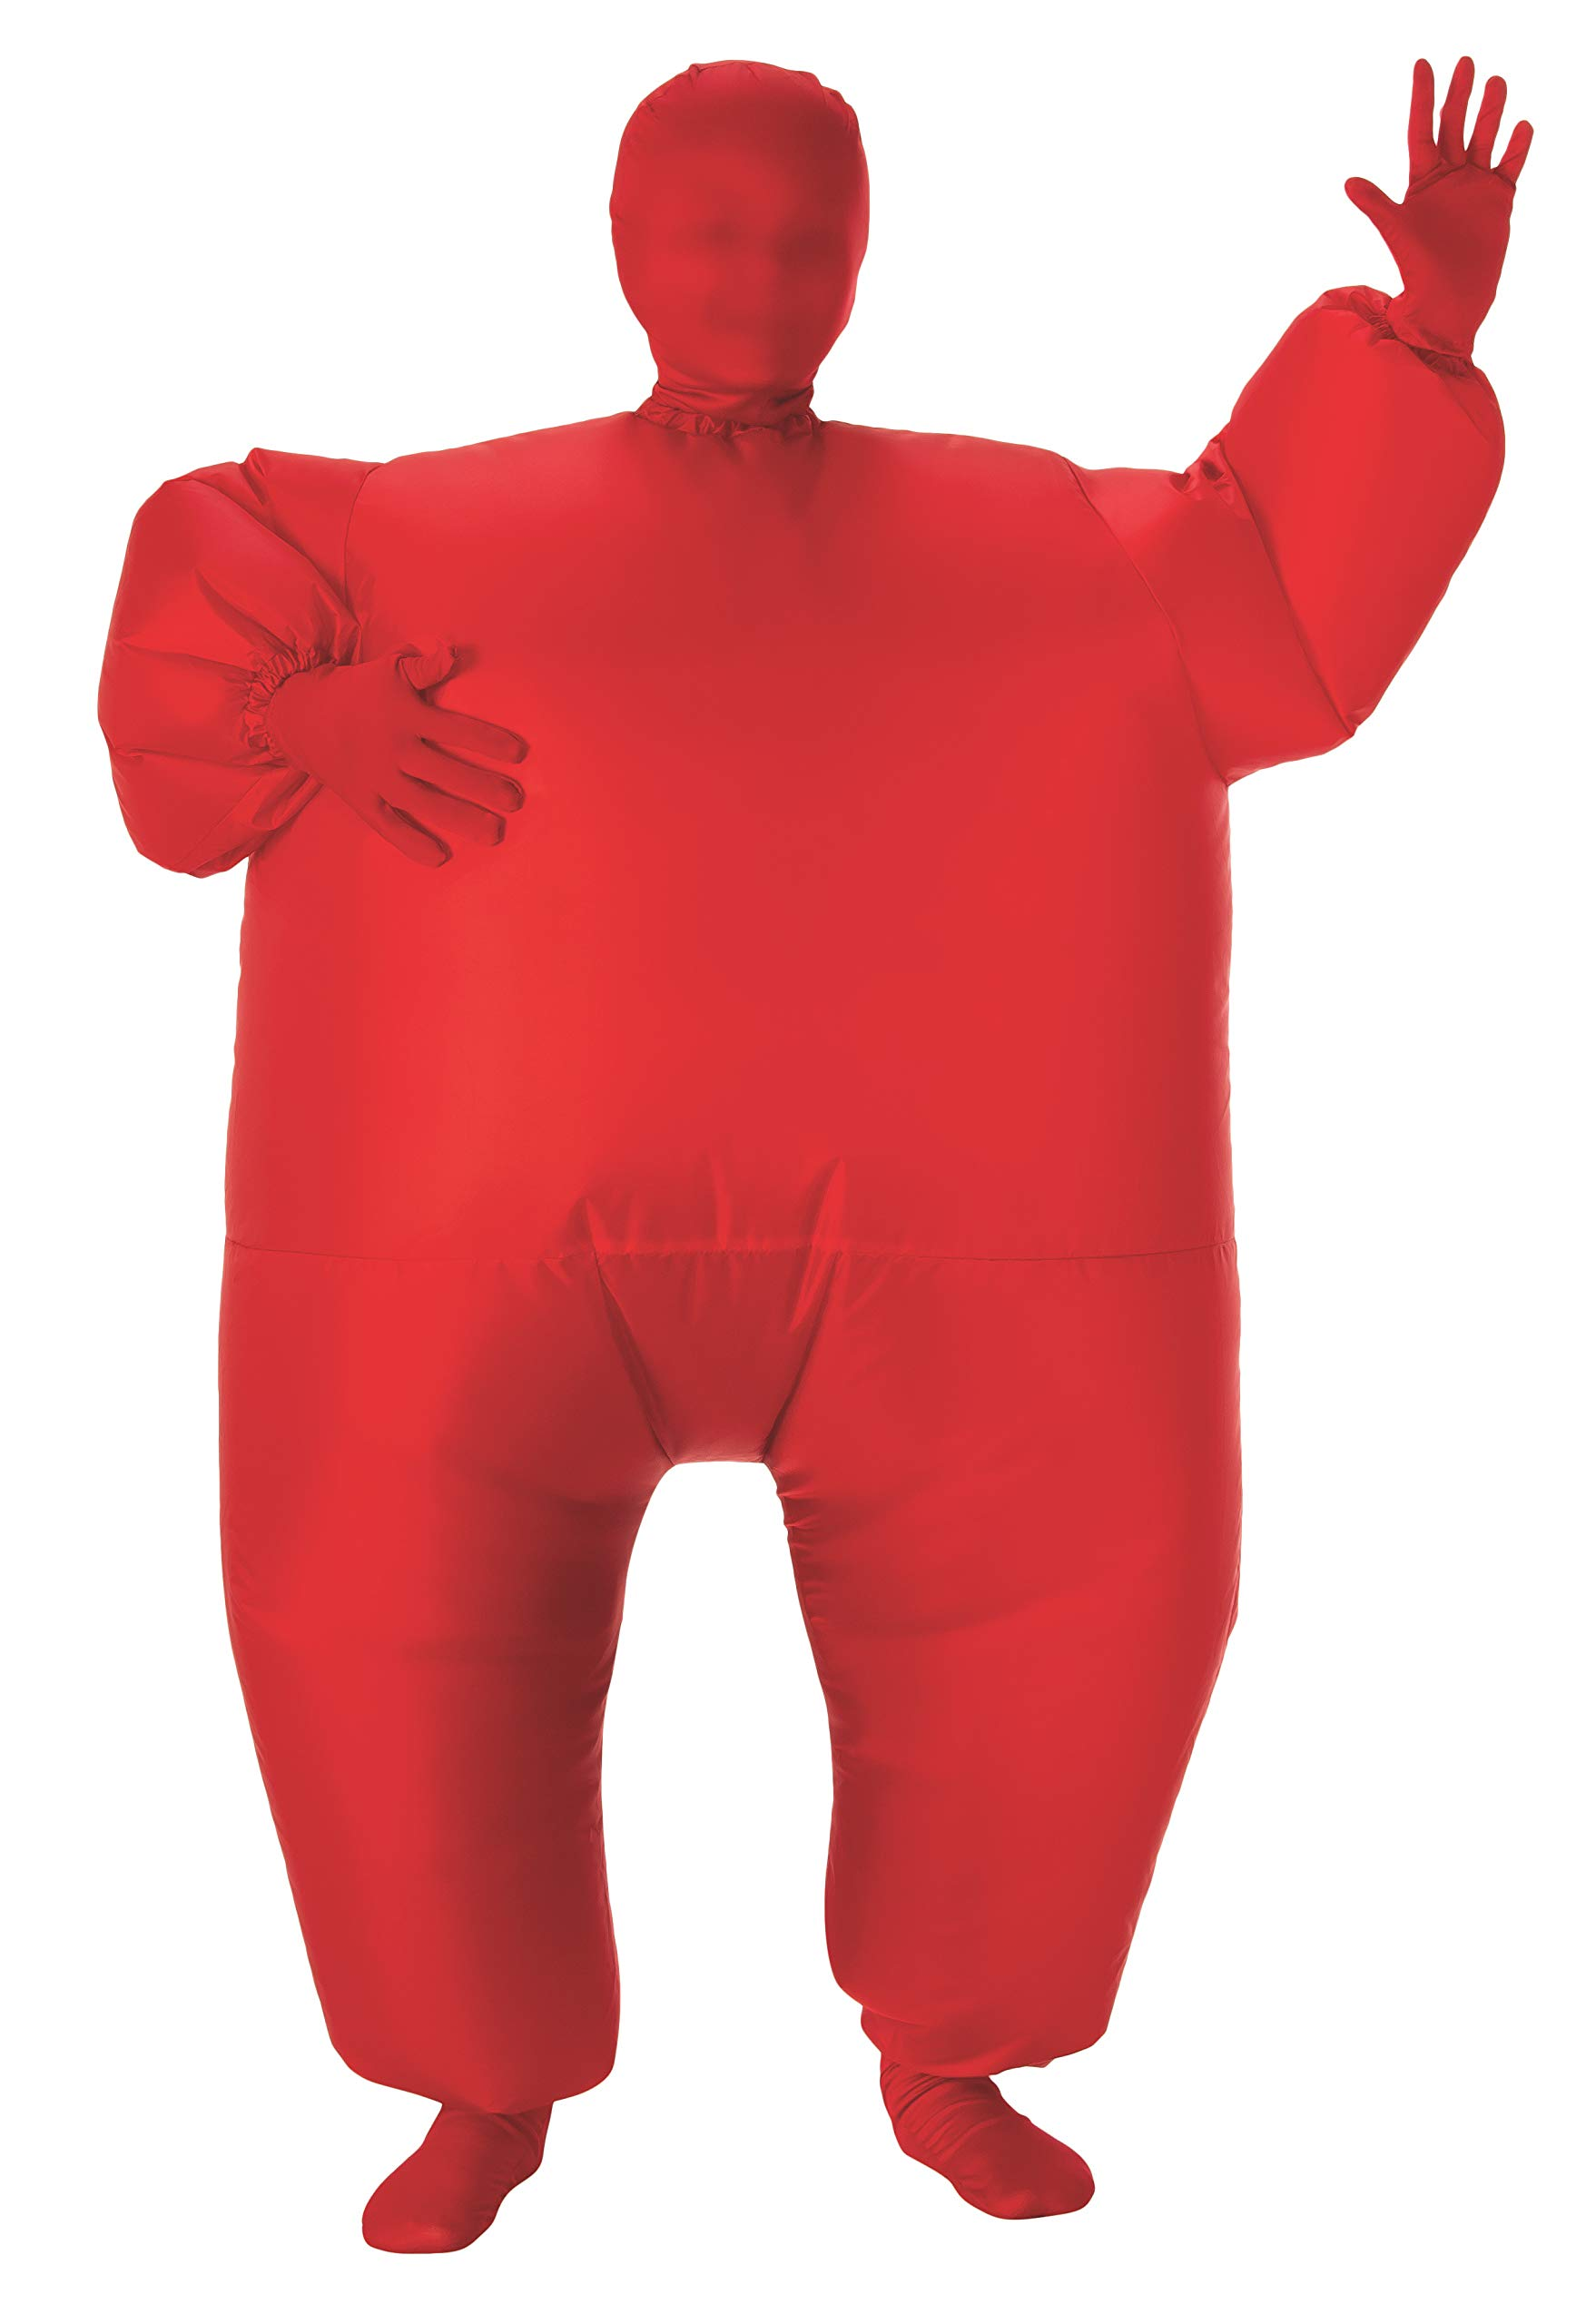 Black One Size Rubie/'s Inflatable Full Body Suit Costume